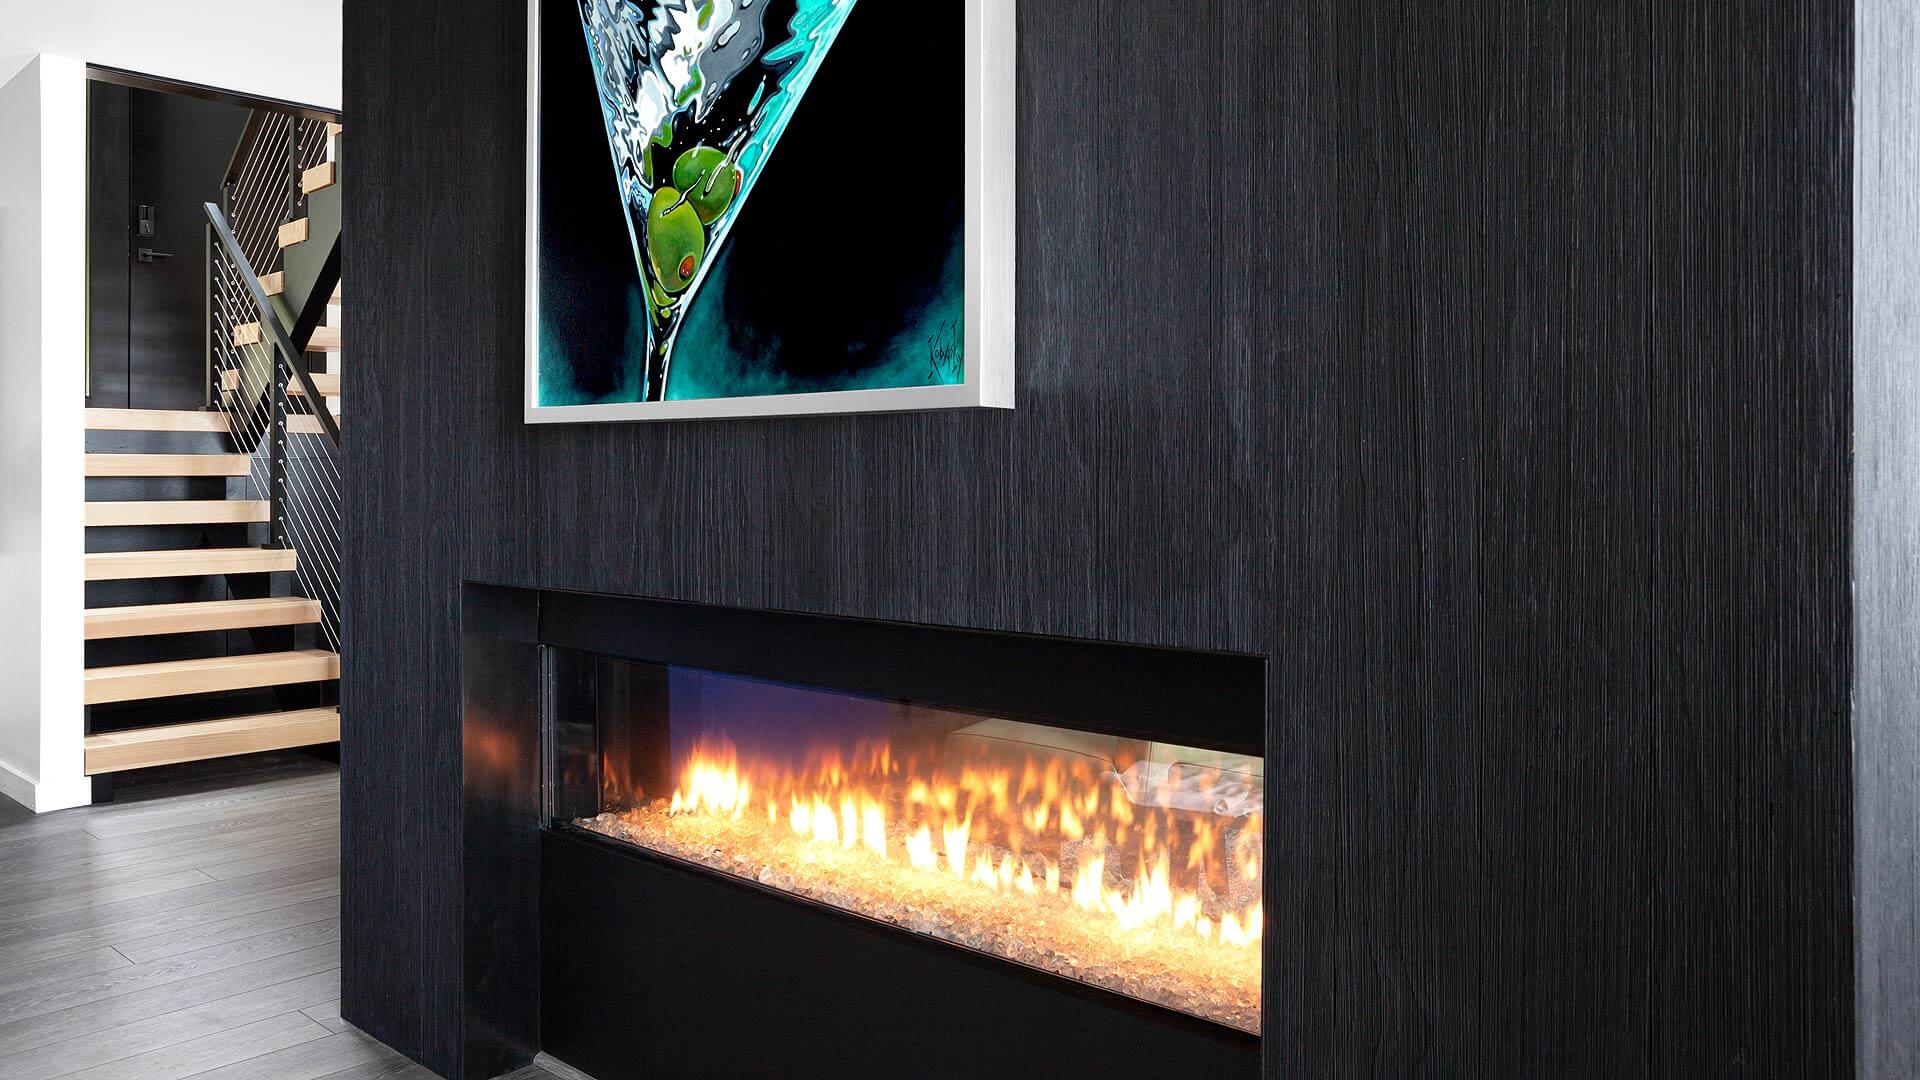 Charred wood and steel wrap gas two-sided fireplace - custom Eastern White Pine stair treads with open riser and cable rail system make up entry stair - Lakeside Modern Cottage (H-LODGE) - Unionville, Indiana, Lake Lemon